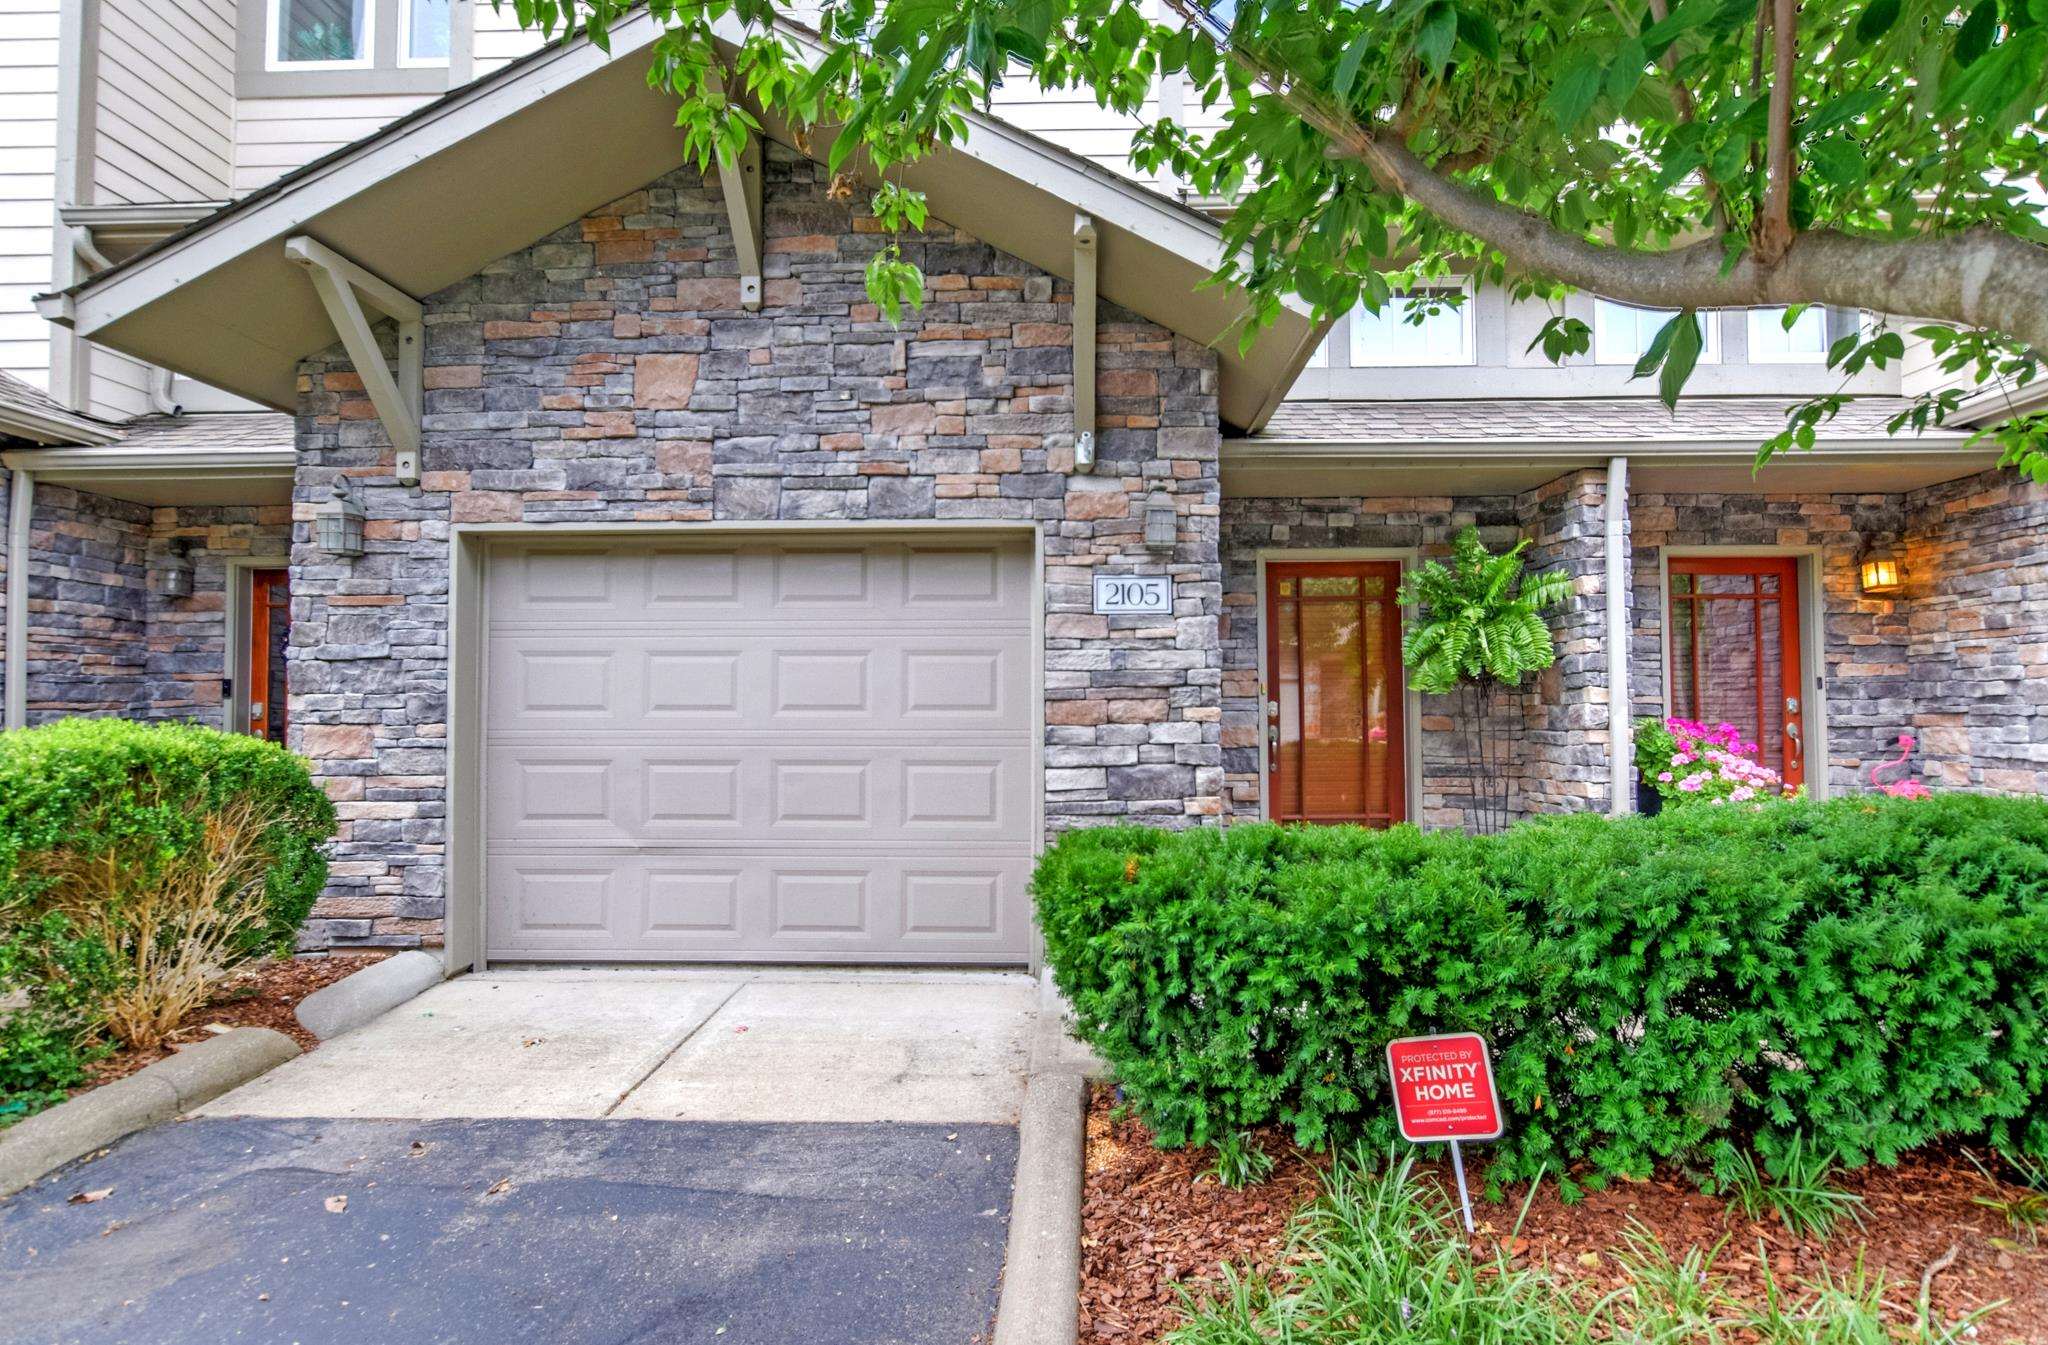 320 Old Hickory Blvd Apt 2105, Bellevue in Davidson County County, TN 37221 Home for Sale